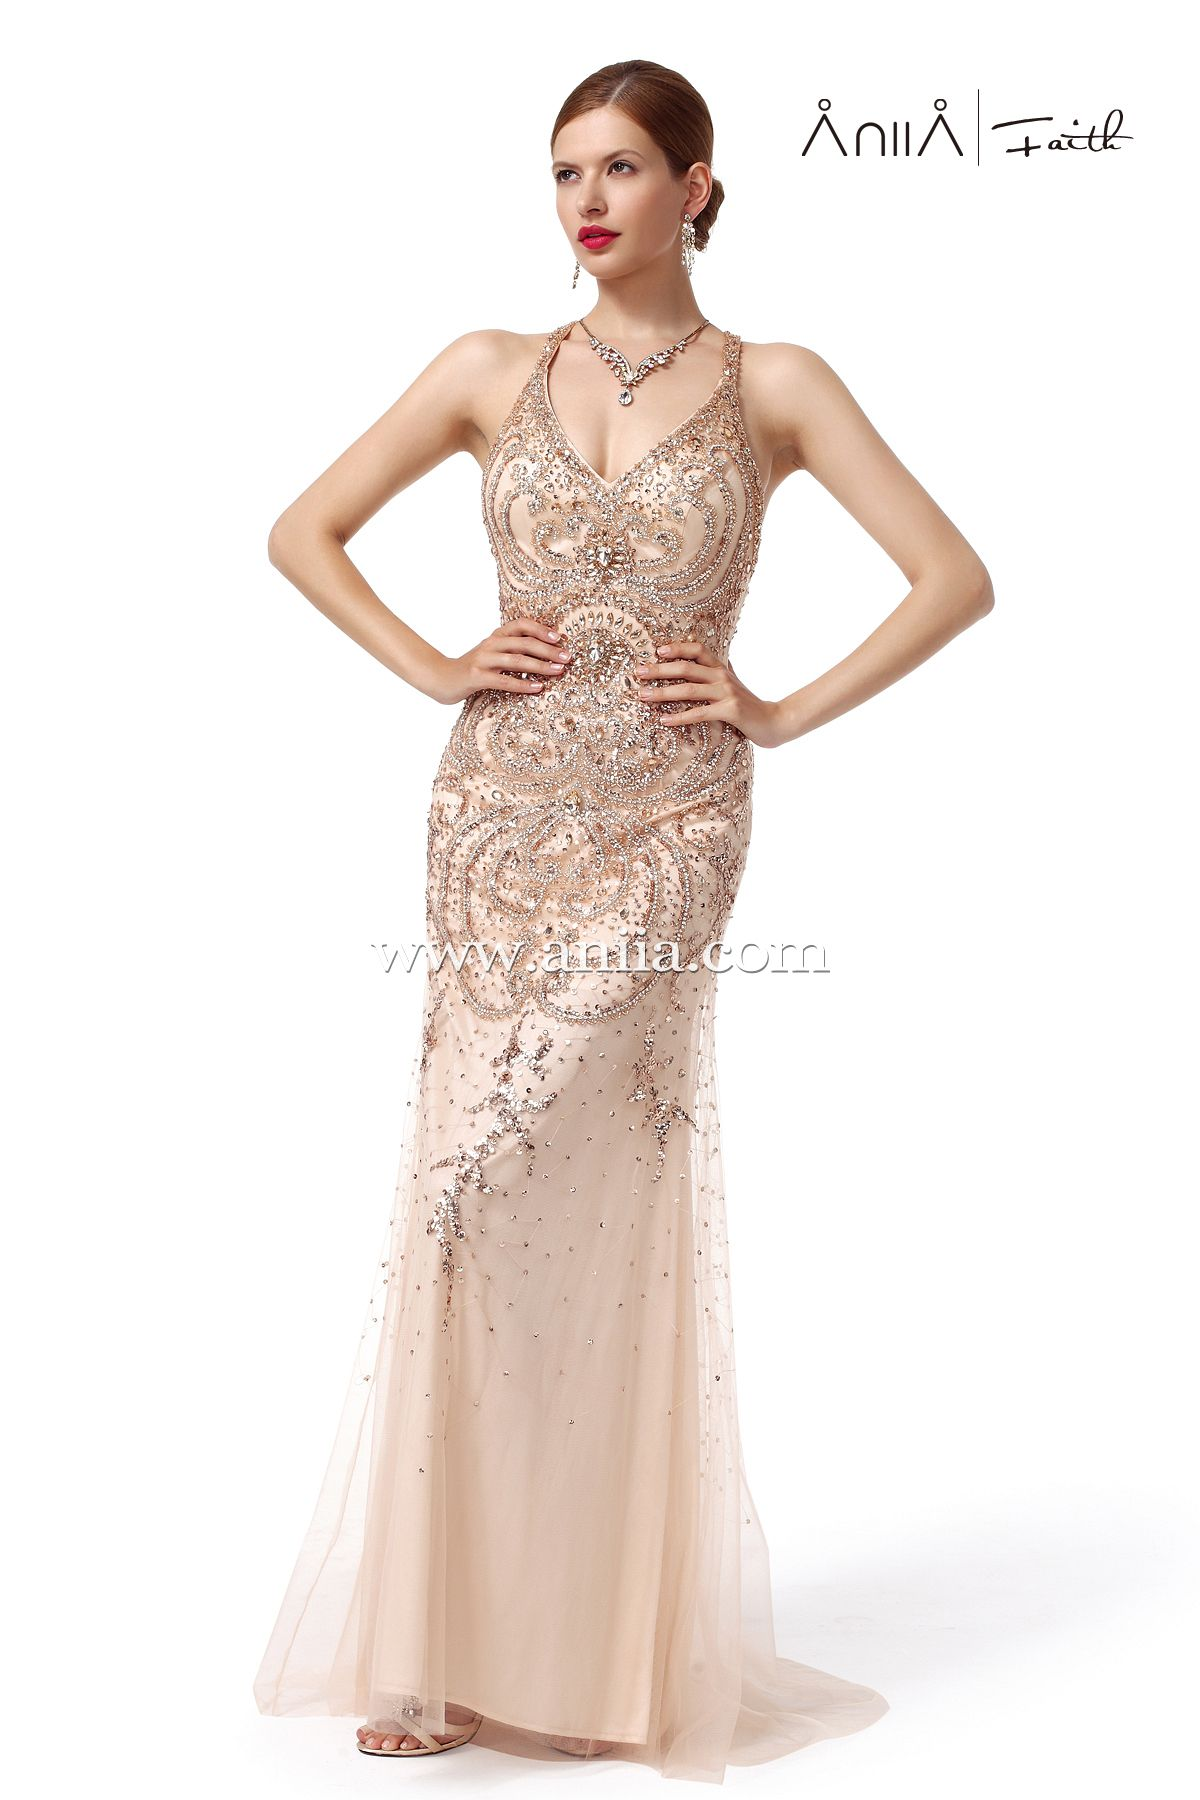 I LUV that dress!!! So delicate and also luxurious! And don't even mention those beads and sequins! I'll pin a detail pic soon so you can all see those wonderful patterns!